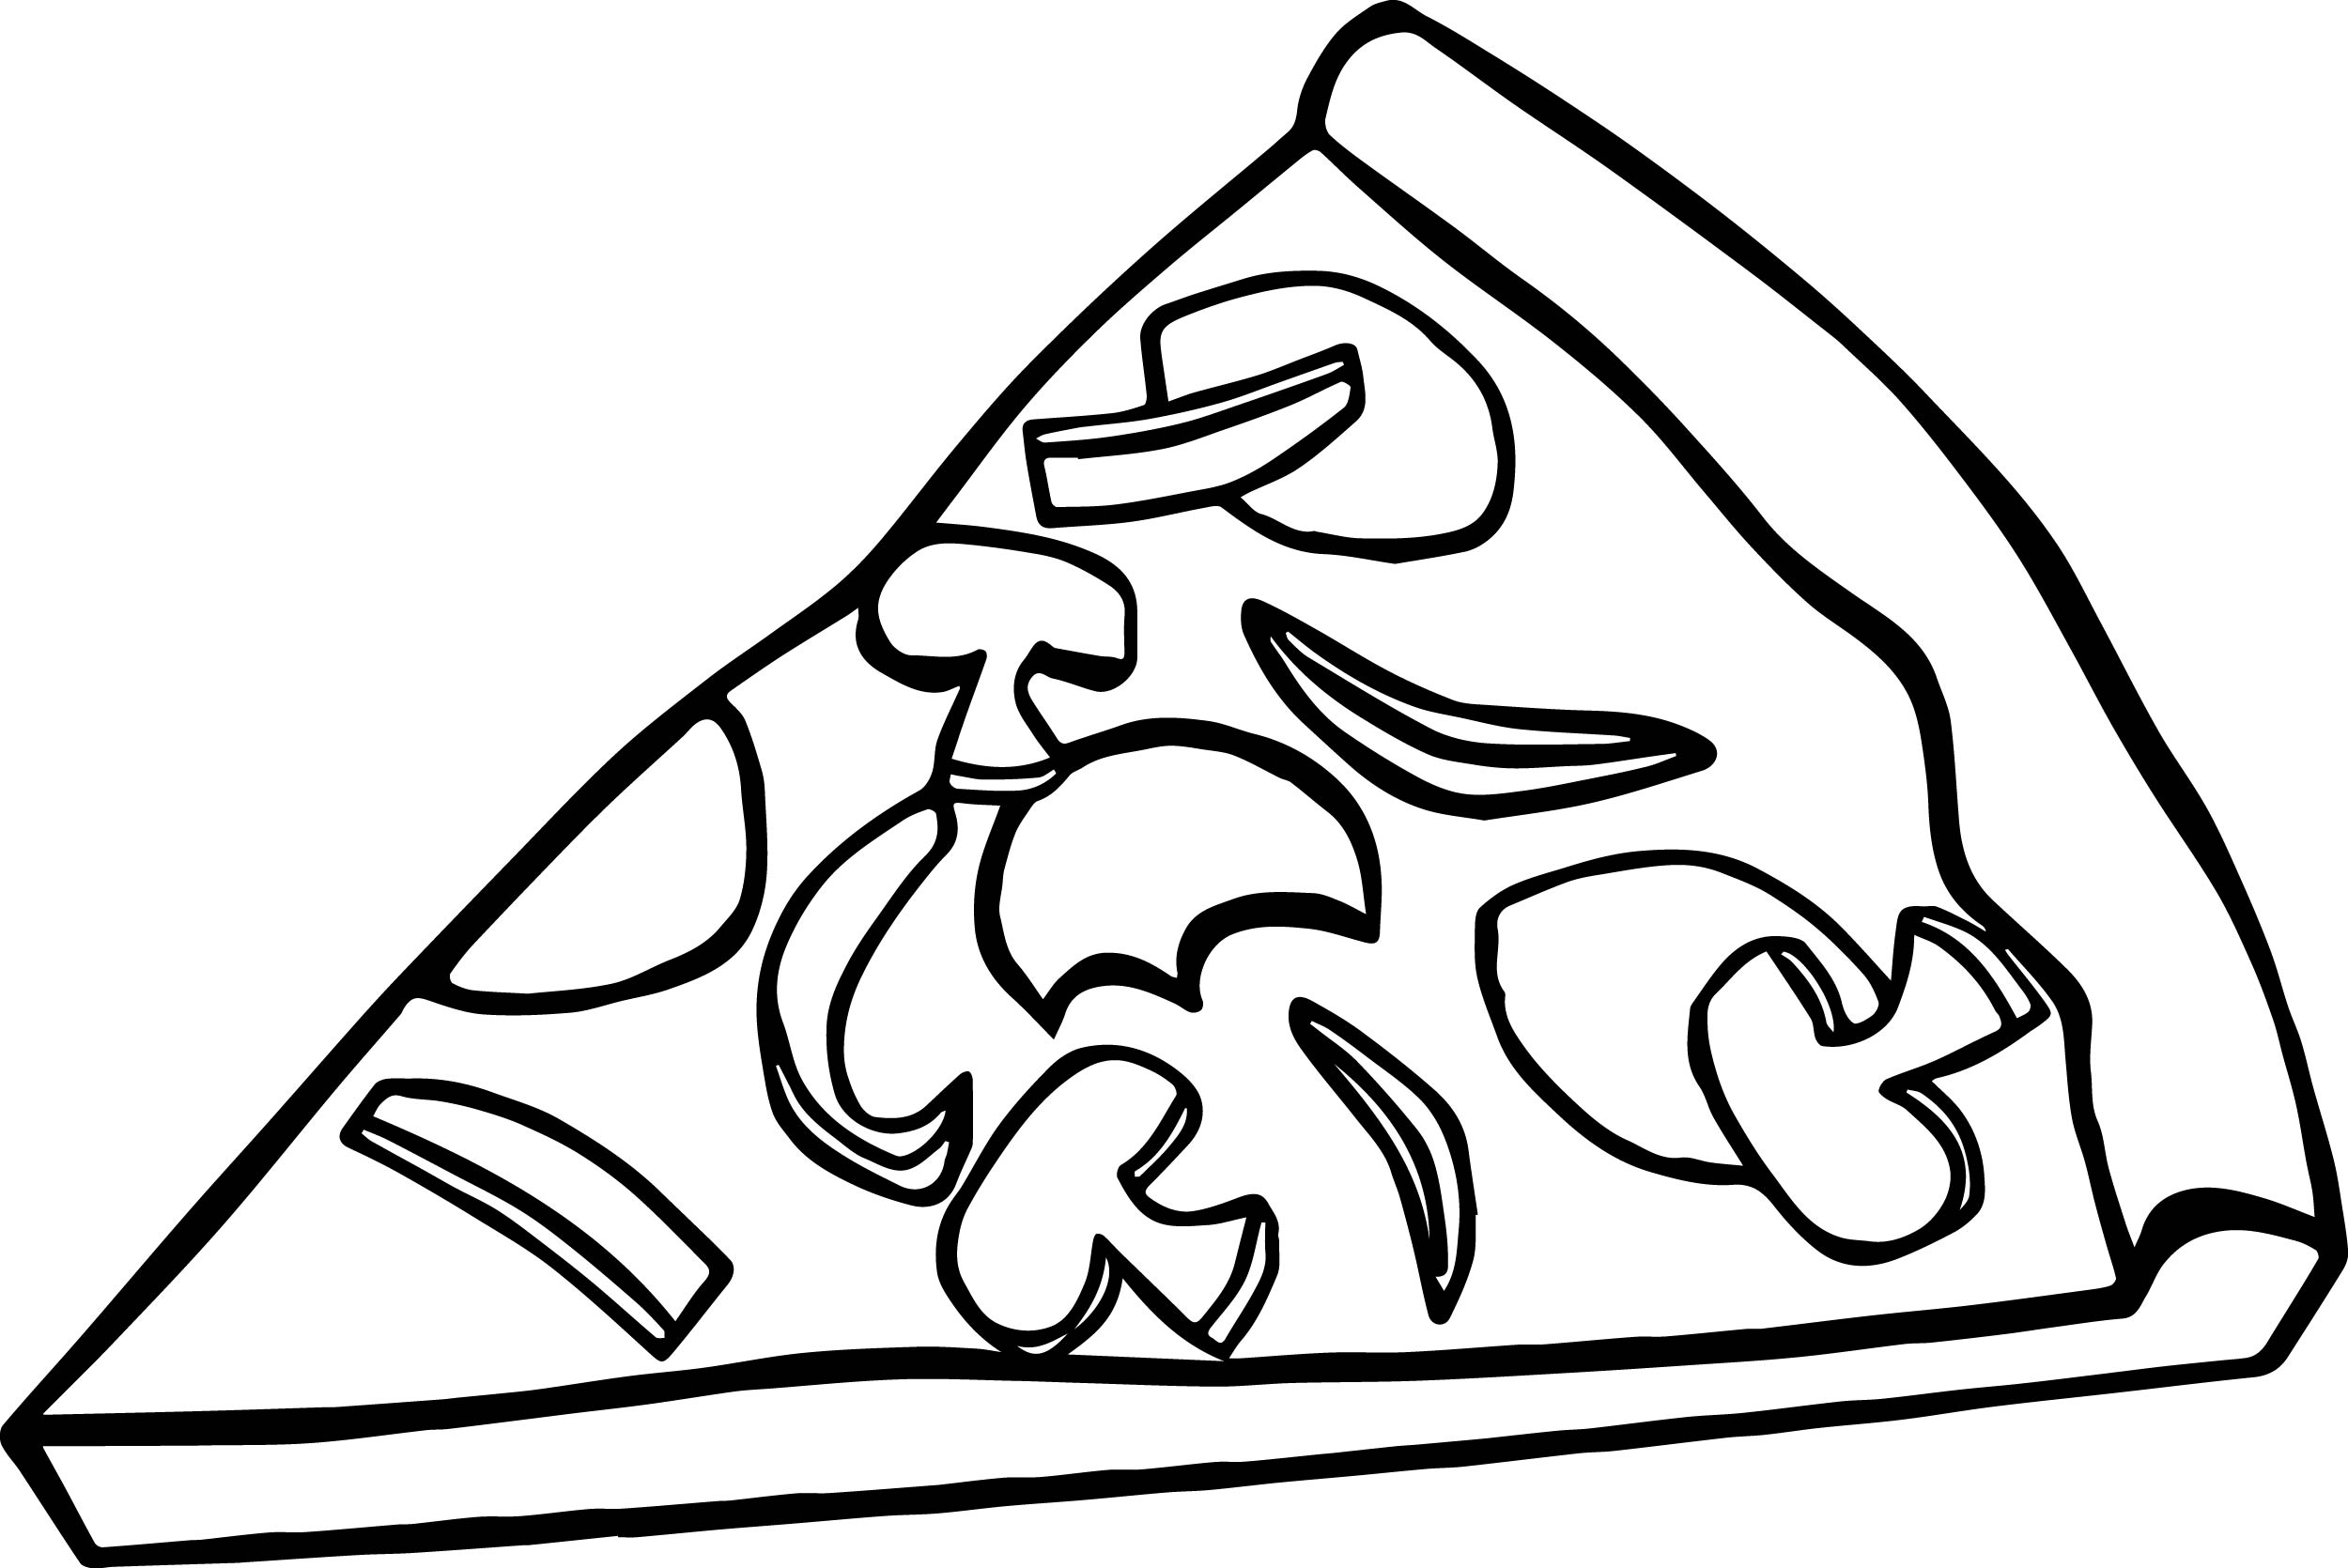 Pepperoni Pizza Slice Coloring Page